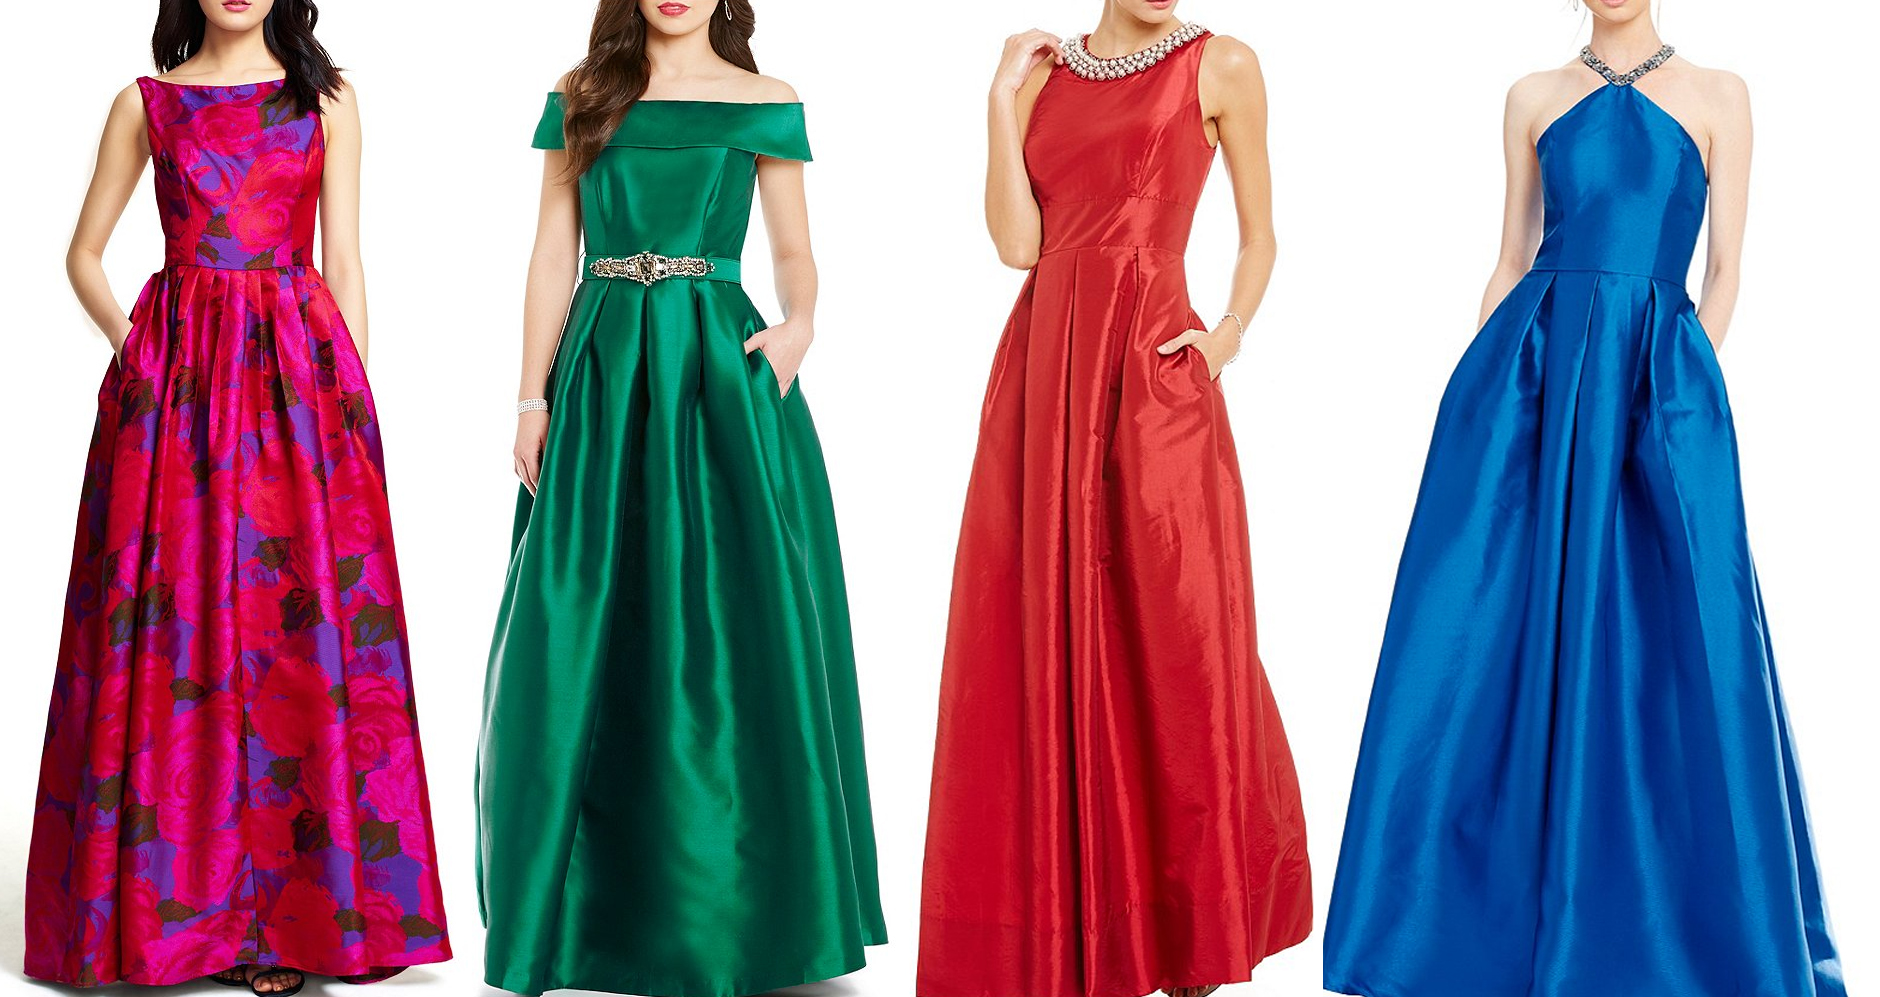 Favorite evening gowns at Dillards - My Fashion Wants